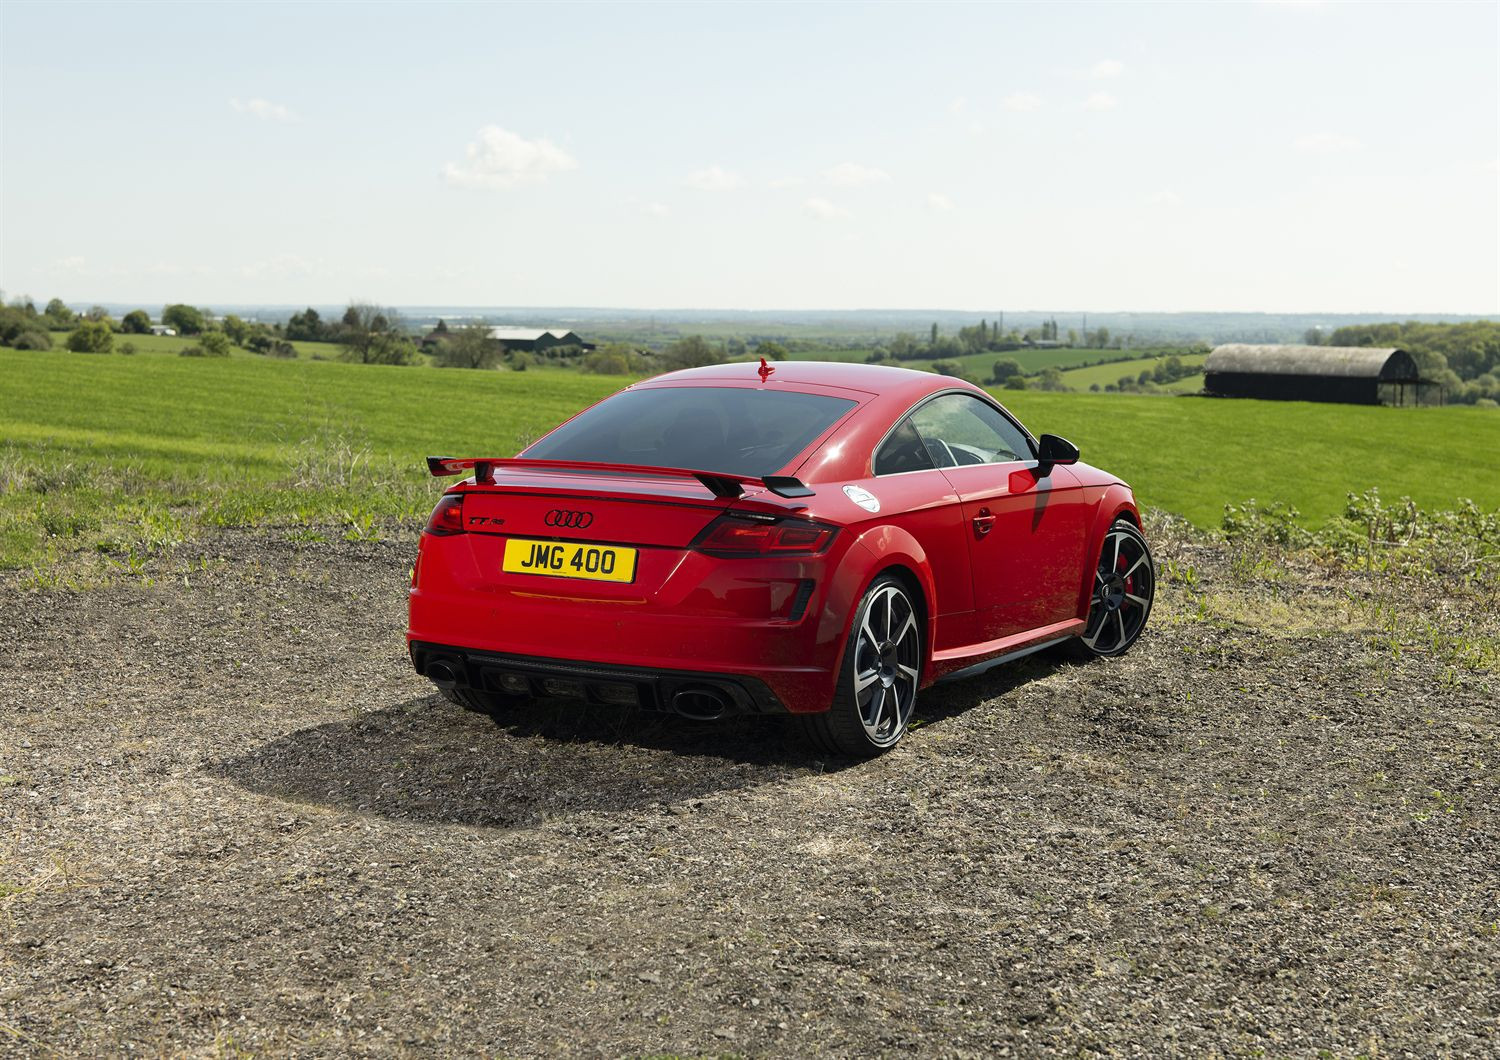 Rear view of a Audi TT RS parked on a field